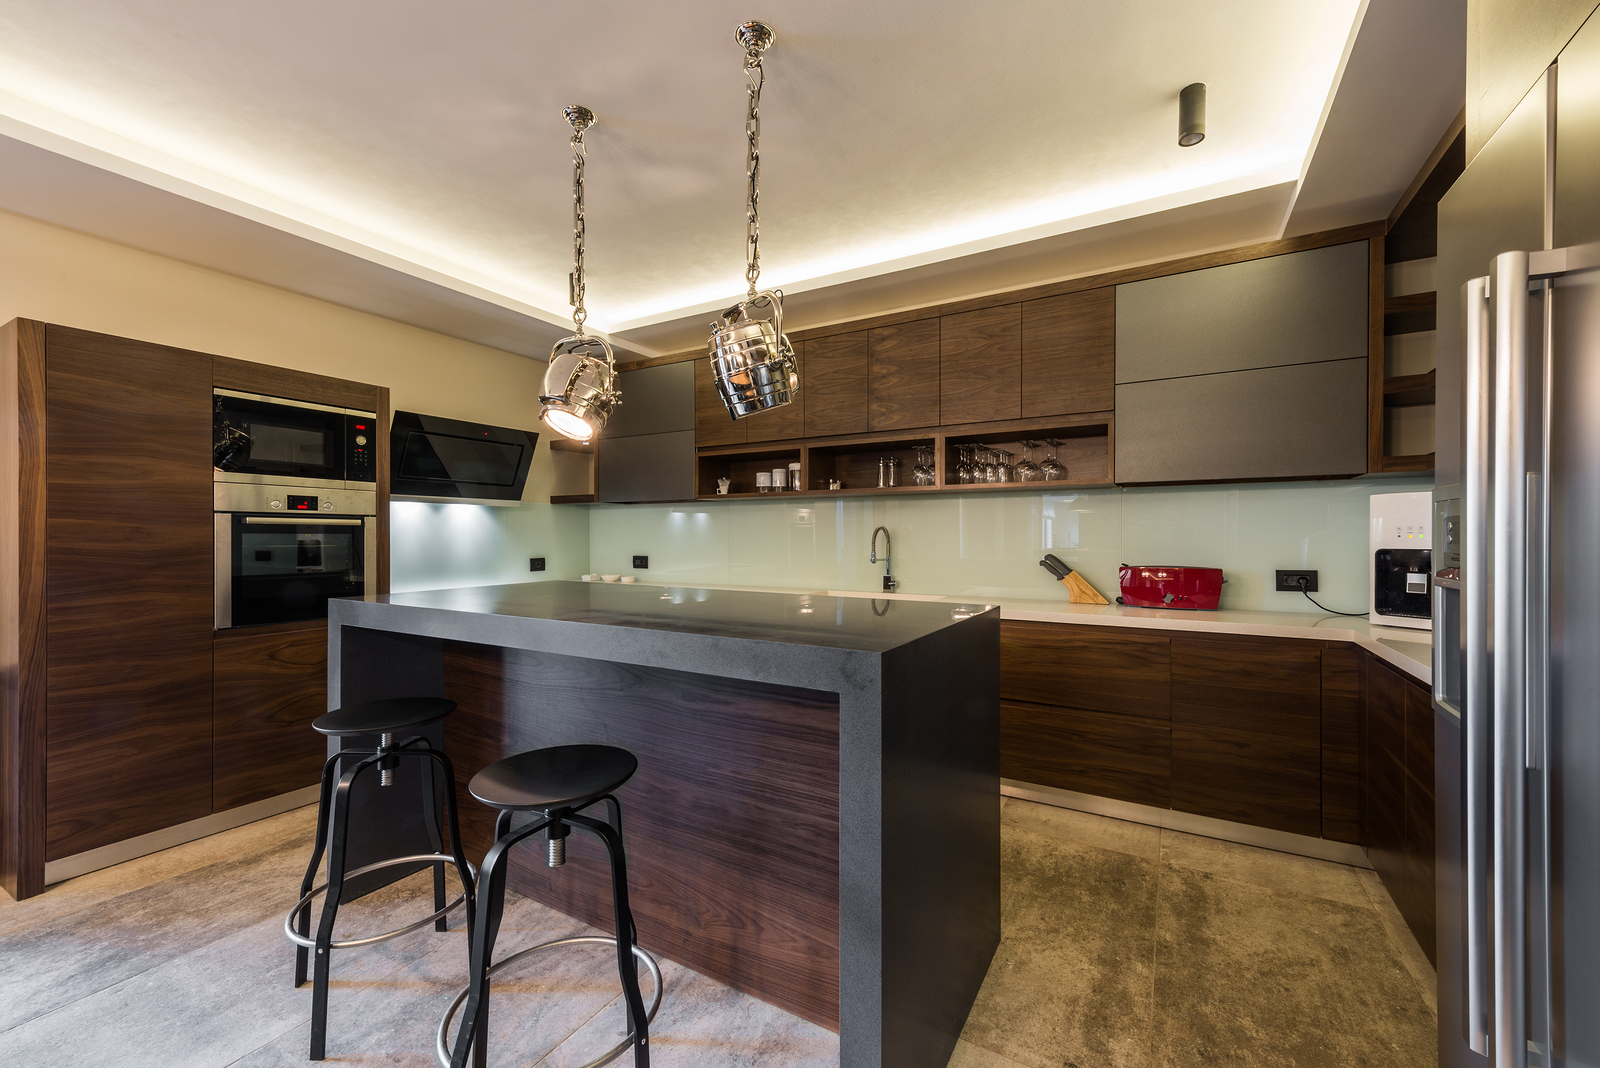 Zapisz Podgląd pobierania Stools at kitchen bar kitchen island and stools in modern and luxury home interior